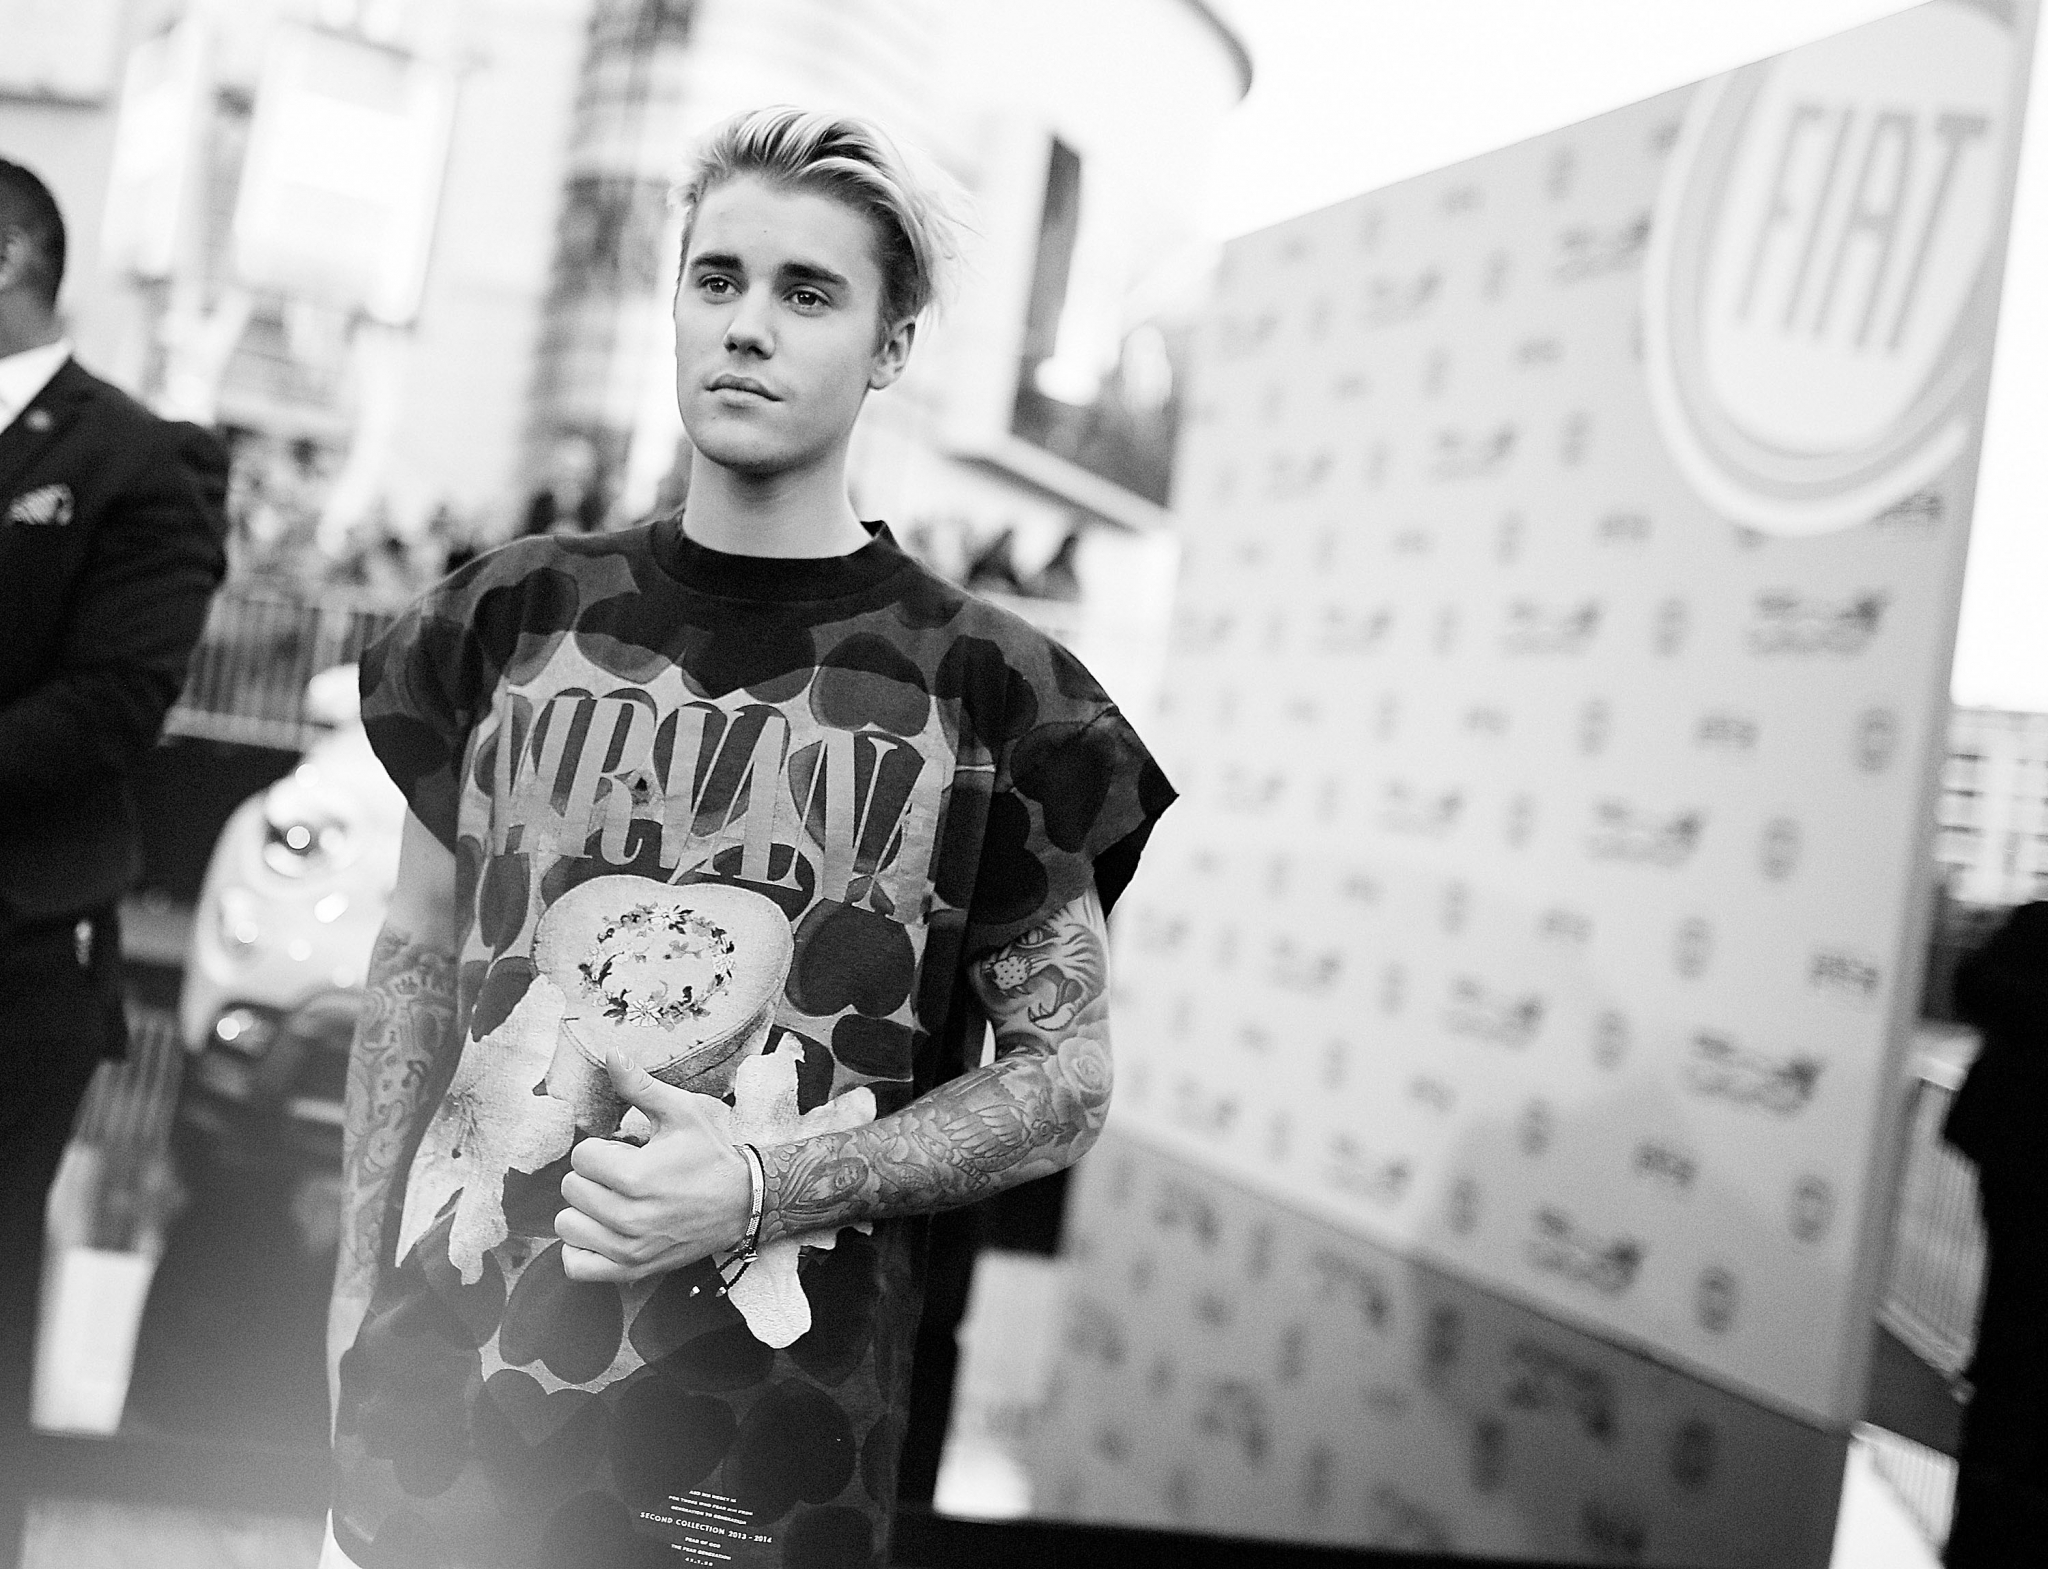 Justin Bieber Quietly Breaks 51 Year Old Record Set By The Beatles